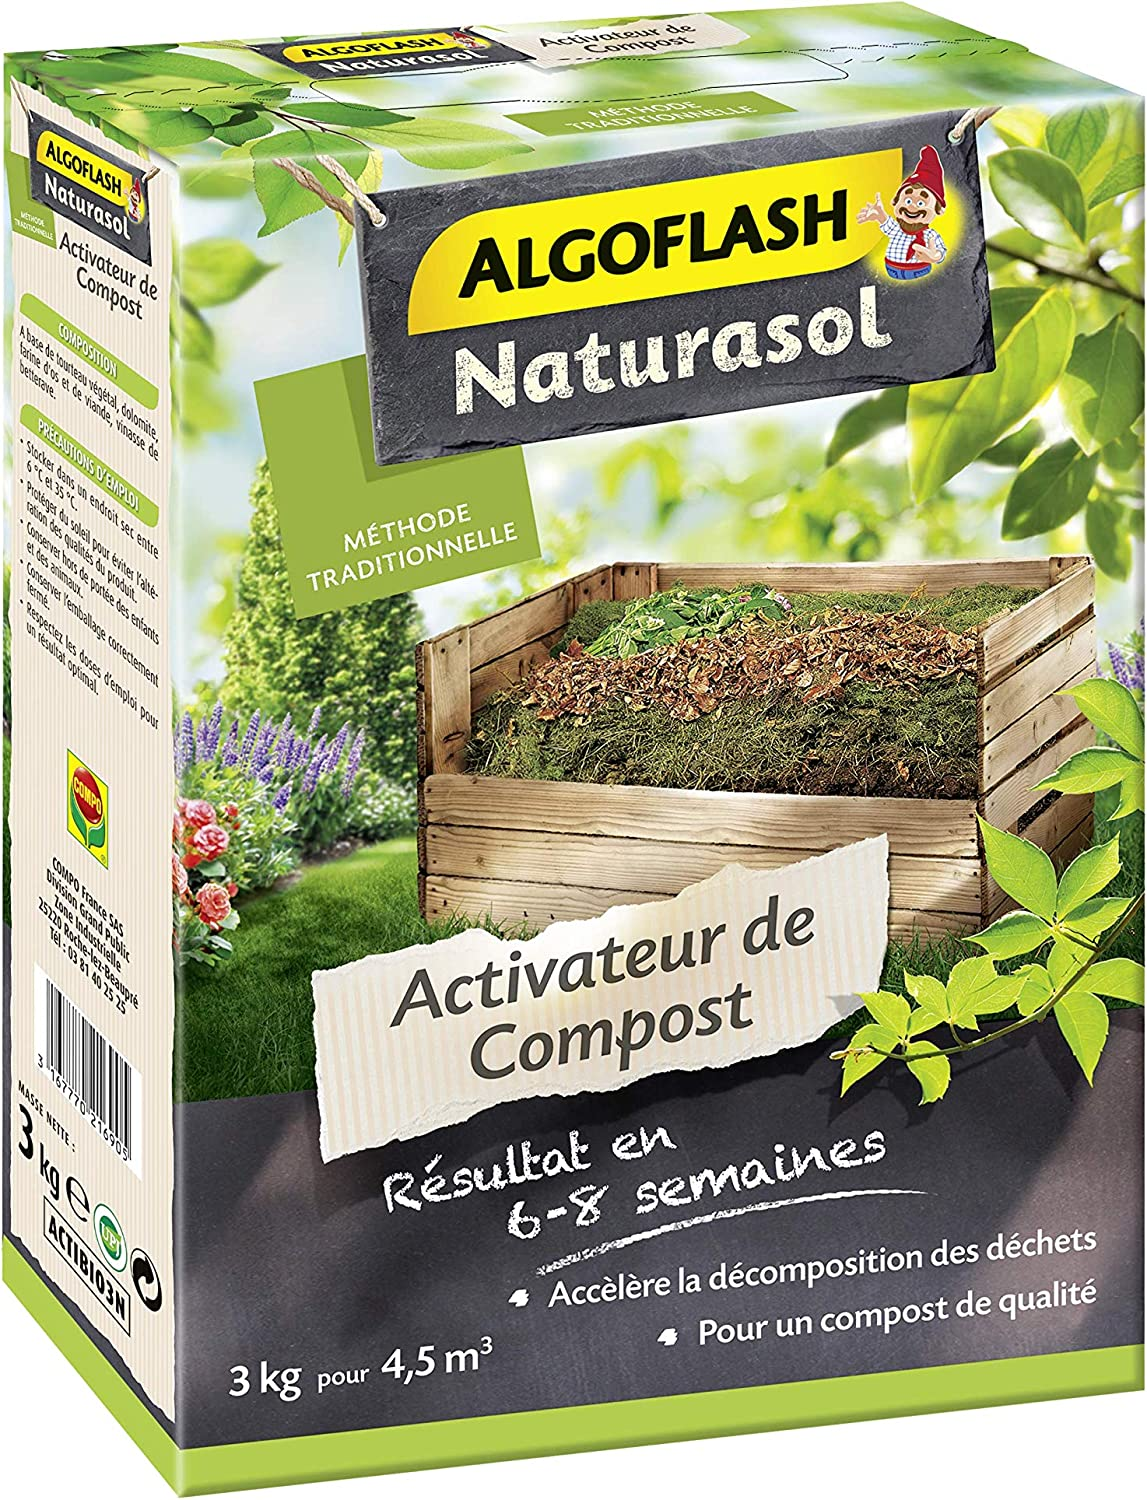 ALGOFLASH NATURASOL Activador de Compost, hasta 4, 5 m3, 3 kg, ACTIBIO3N, no aplicable: Amazon.es: Jardín